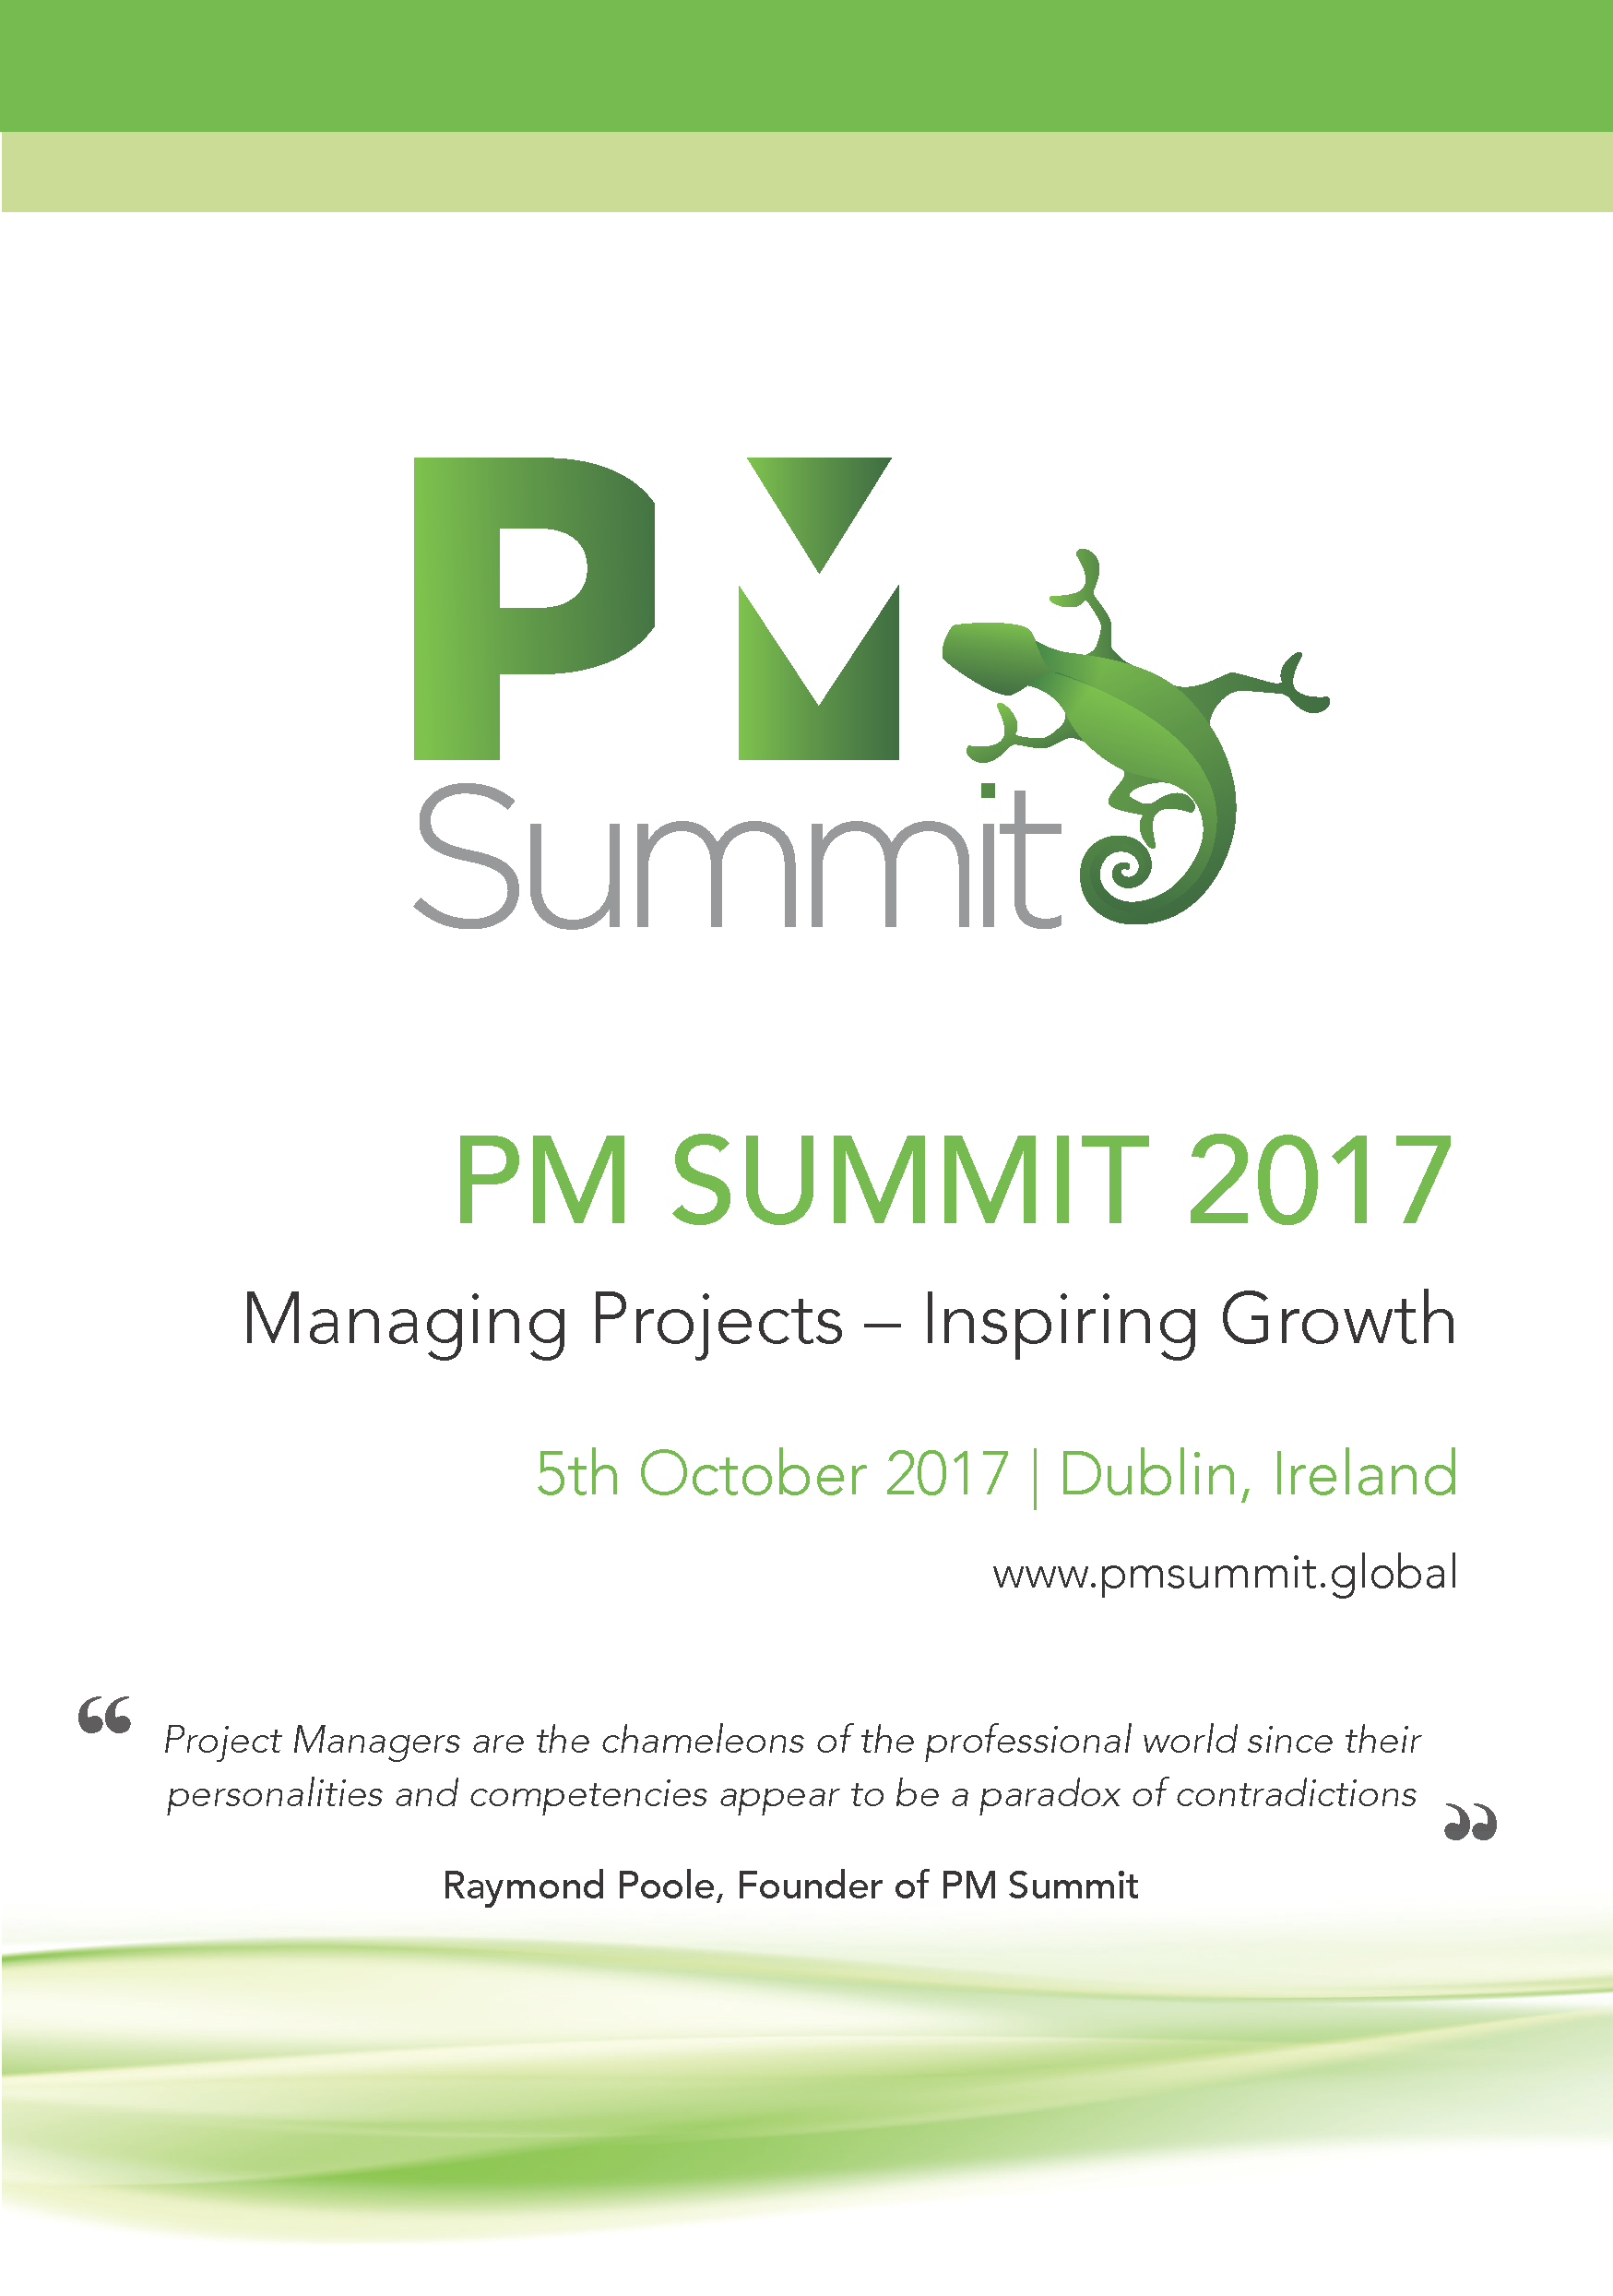 PM Summit 2017